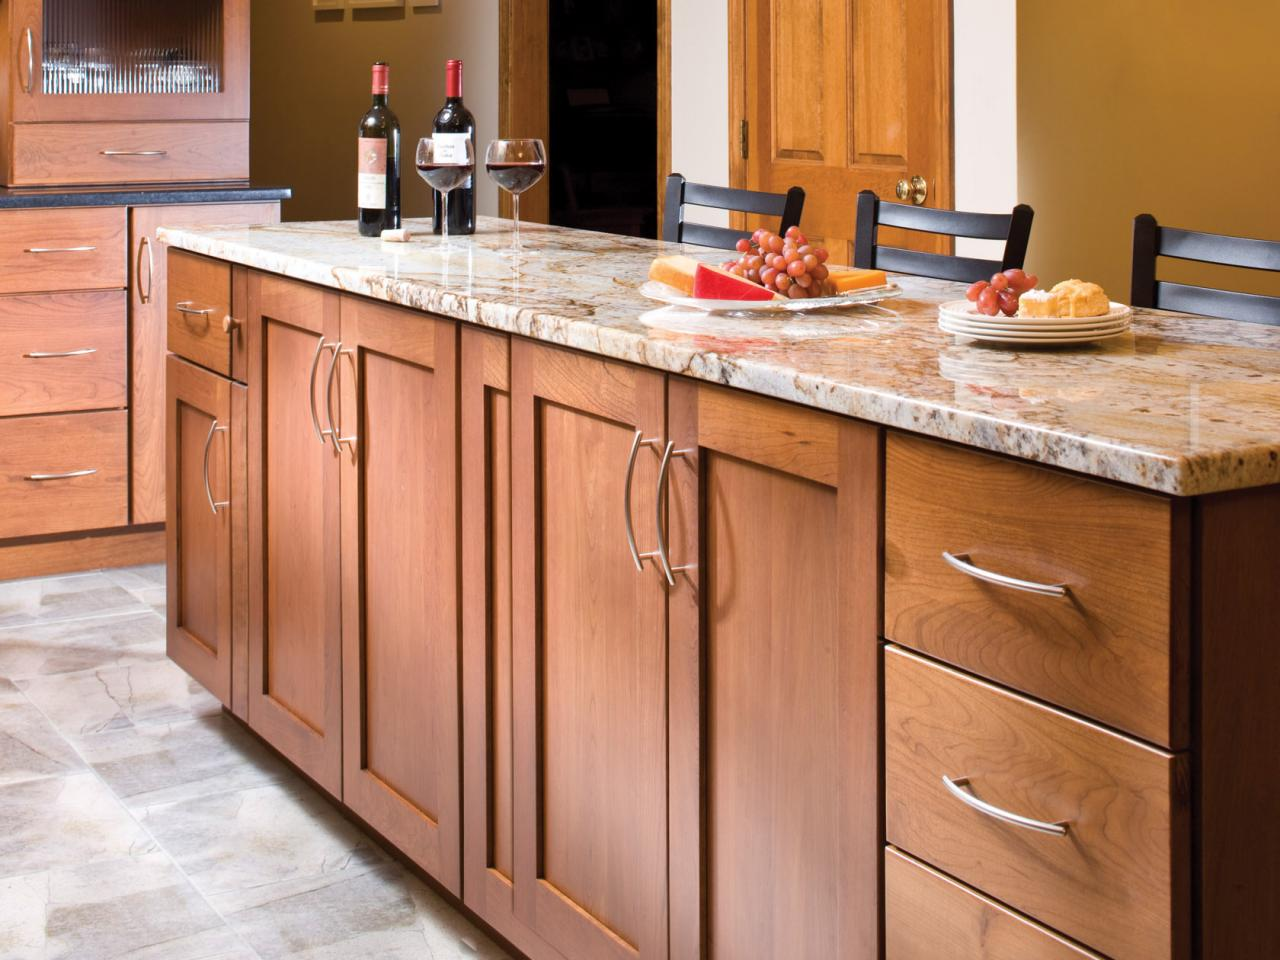 Kitchen construction design and layout - Dark Cabinet Finishes